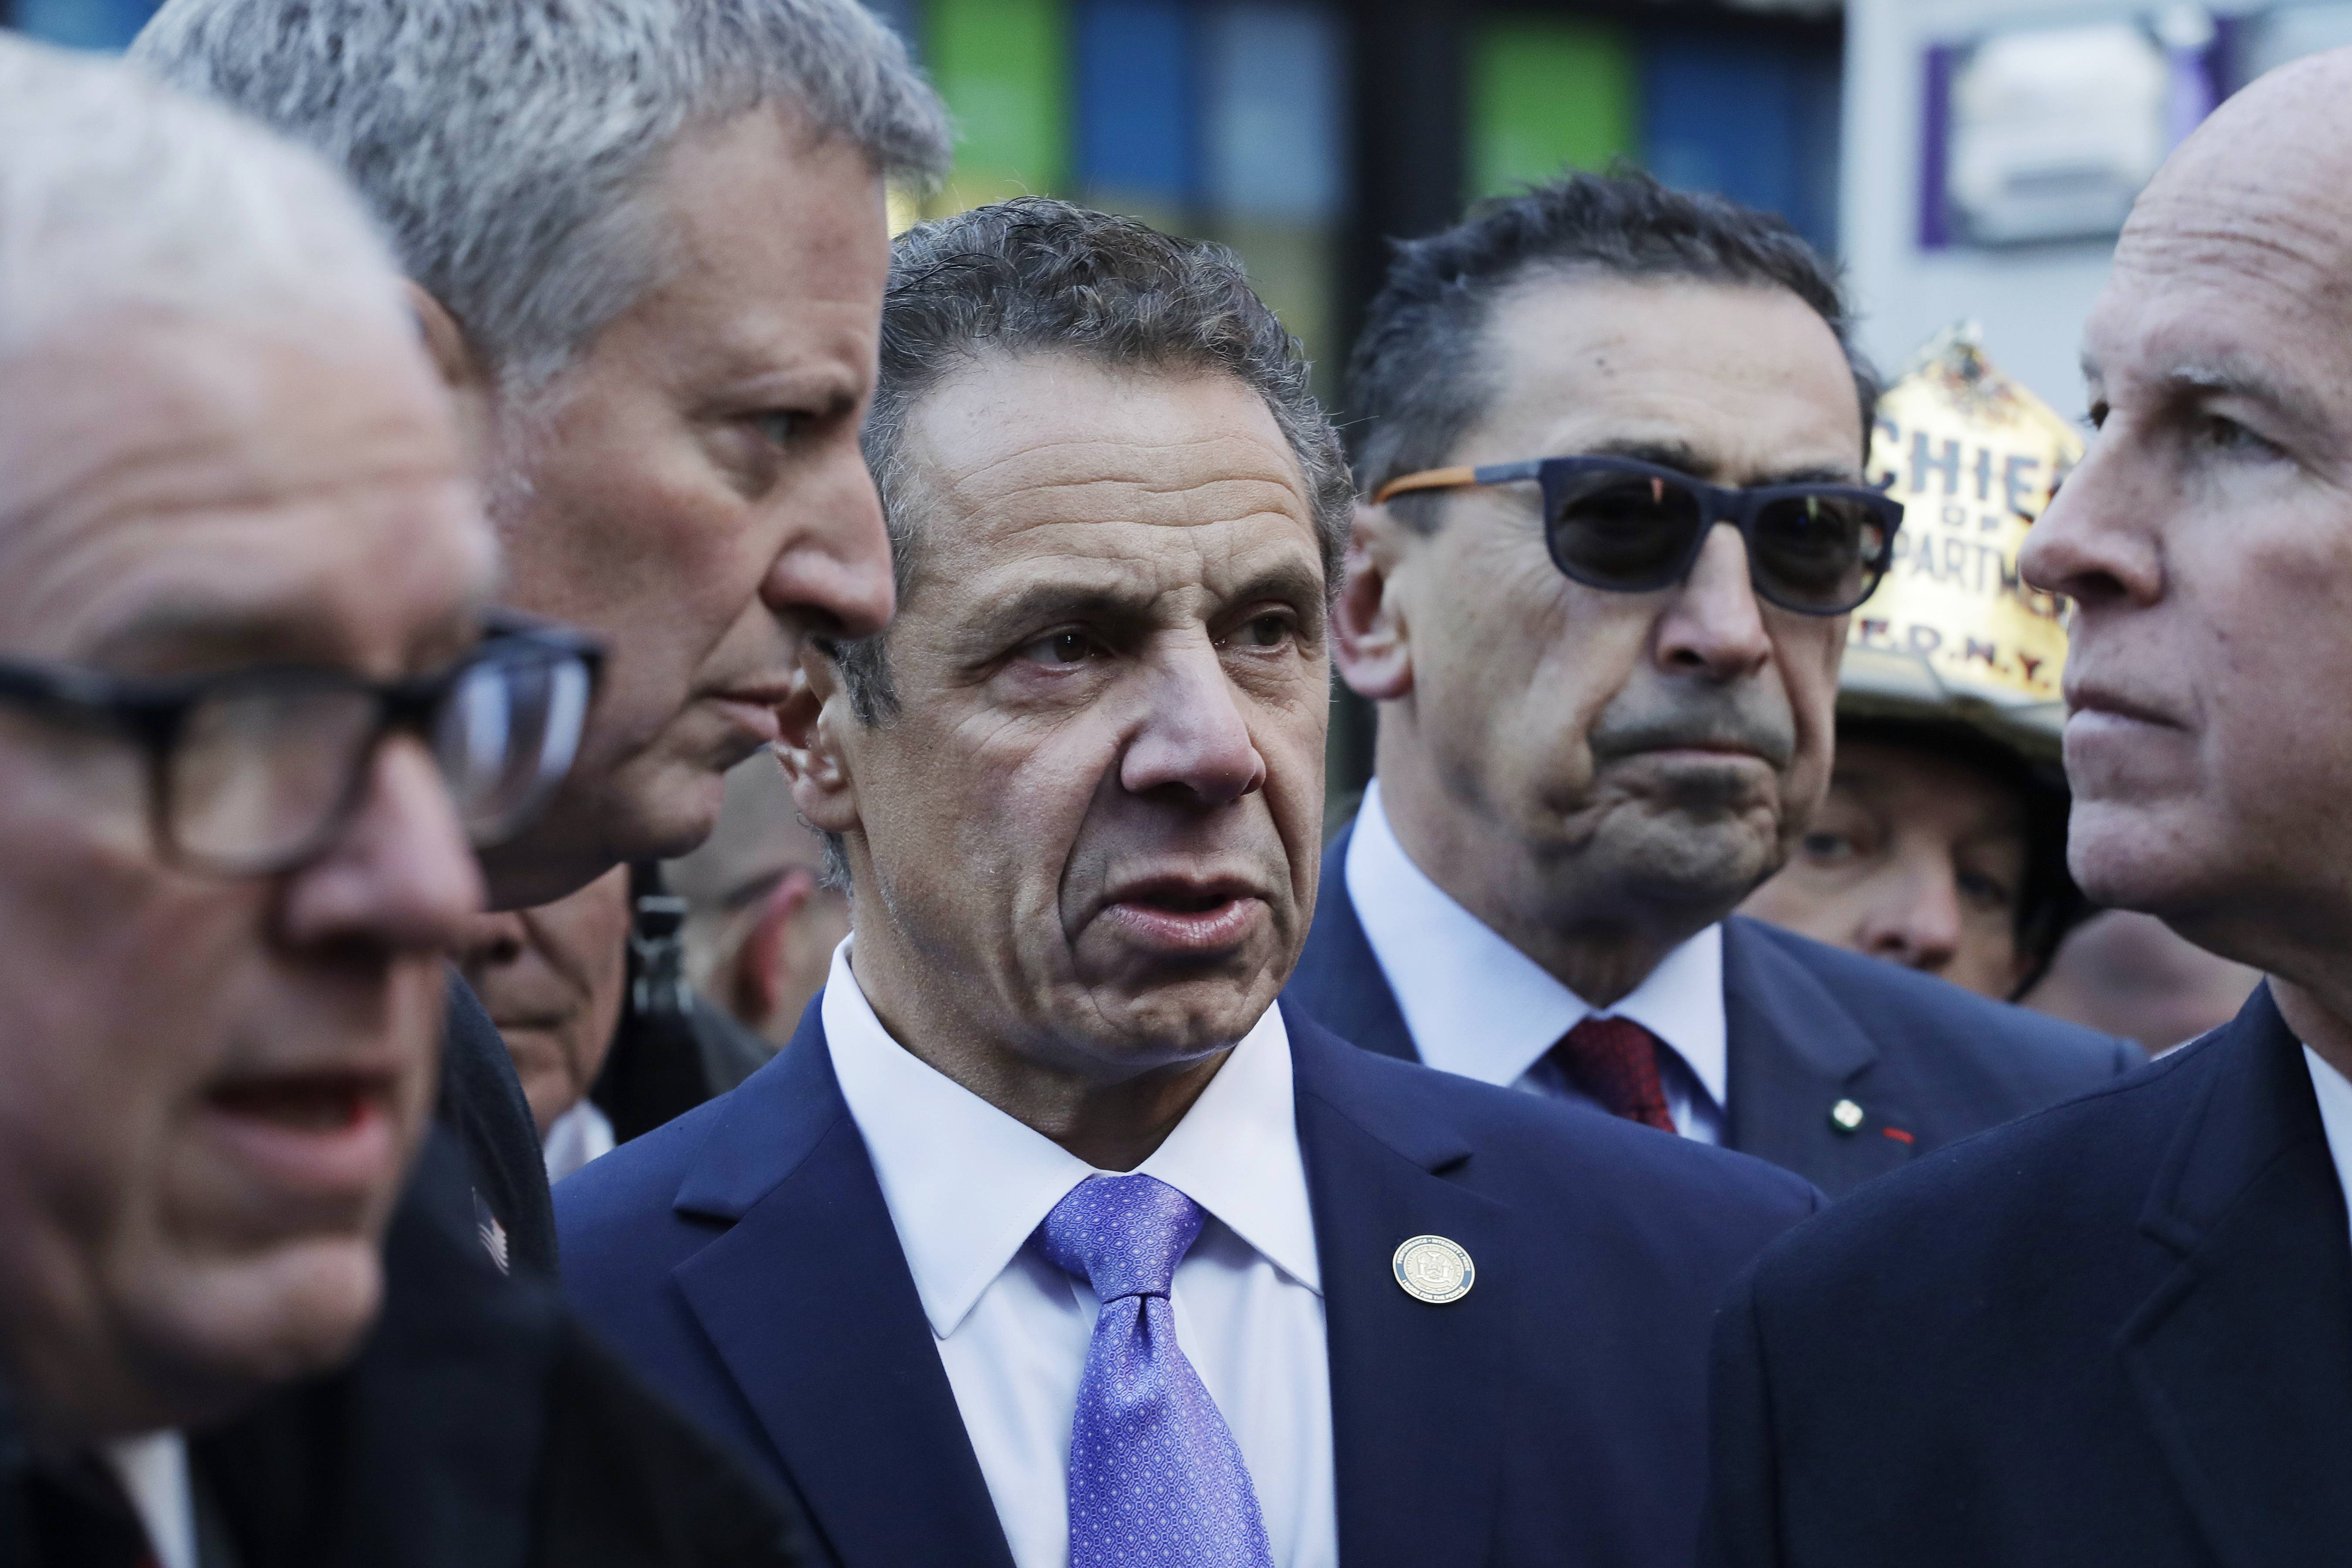 Attending a news conference Monday outside the Port Authority Bus Terminal are, from left, John Miller, deputy commissioner with the NYPD, Mayor Bill de Blasio, Gov. Andrew Cuomo, Fire Commissioner Daniel Nigro and Police Commissioner James O'Neill.